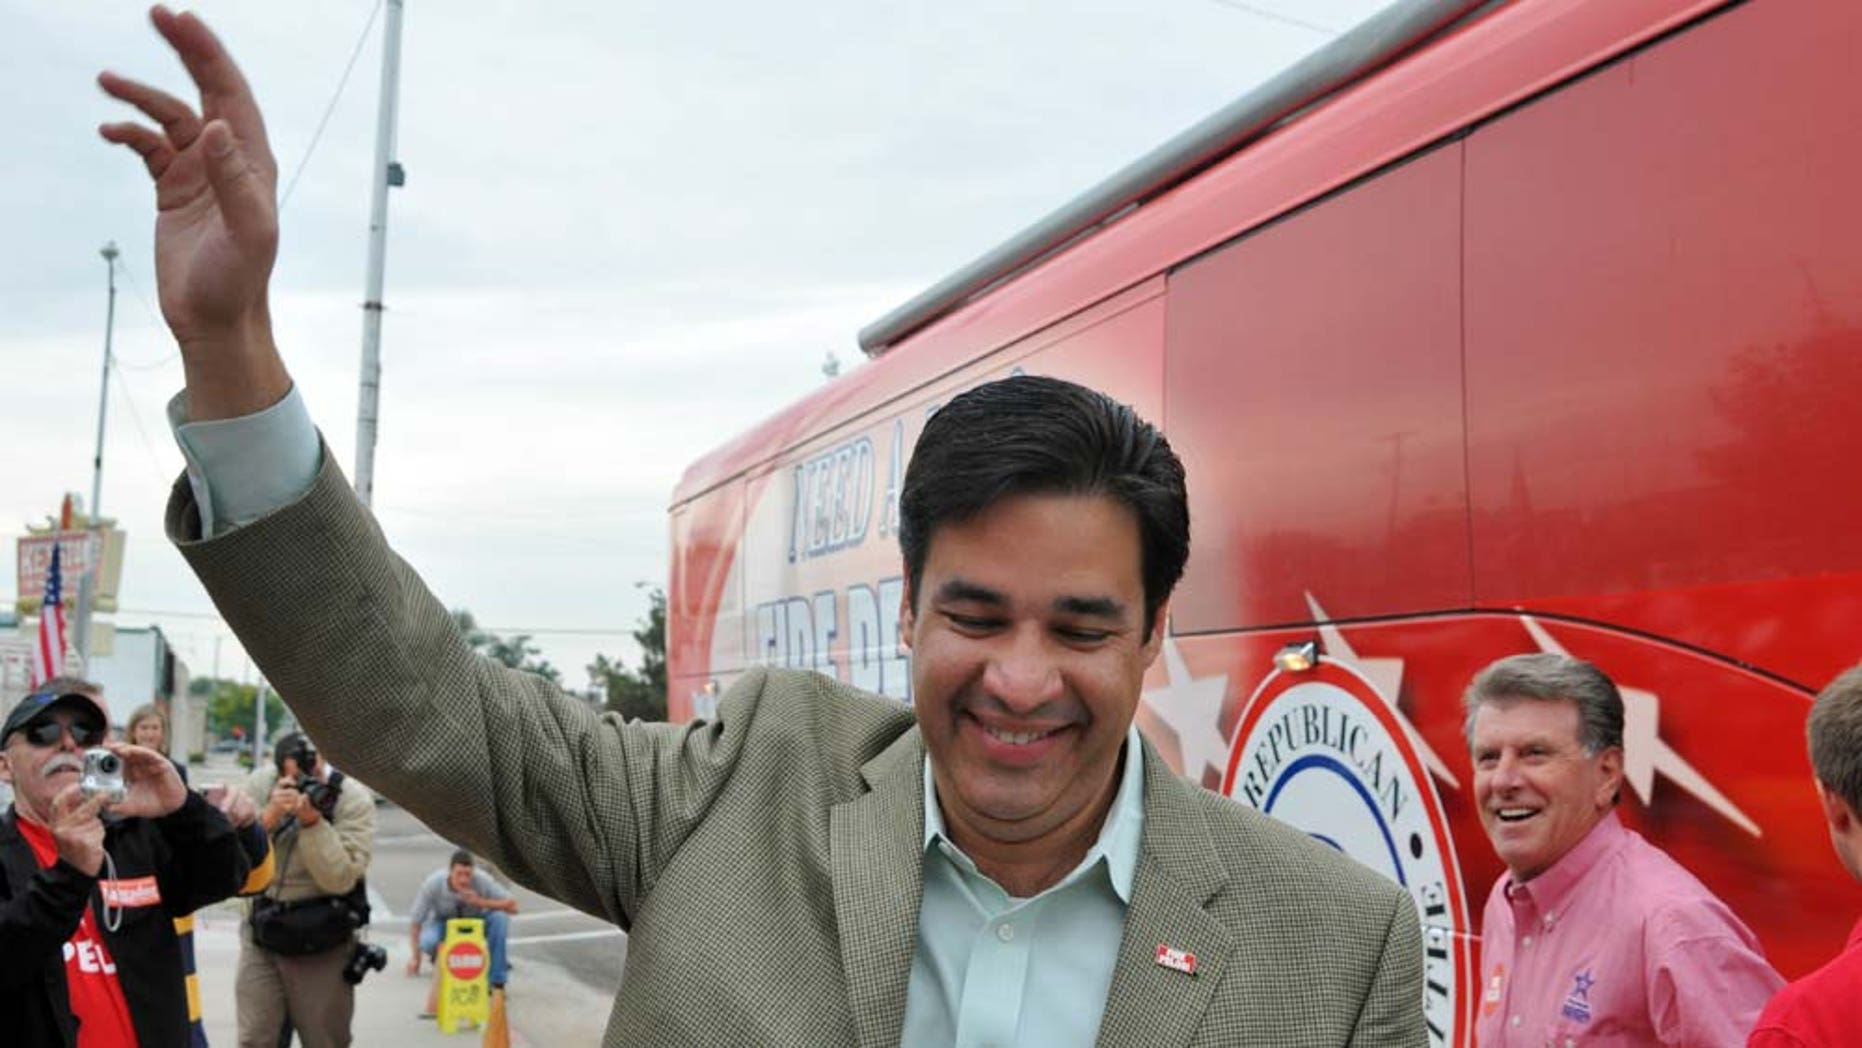 """Raul Labrador, Republican challenger for Idaho's first congressional district, waves to an enthusiastic crowd flanked by Idaho governor C.L. """"Butch"""" Otter, right, after arriving at a rally on Saturday October 9, 2010 in Caldwell, Idaho. Labrador, an attorney and two-term state lawmaker, is bidding to unseat Democrat Walt Minnick. (AP Photo/Idaho Press-Tribune, Mike Vogt)"""